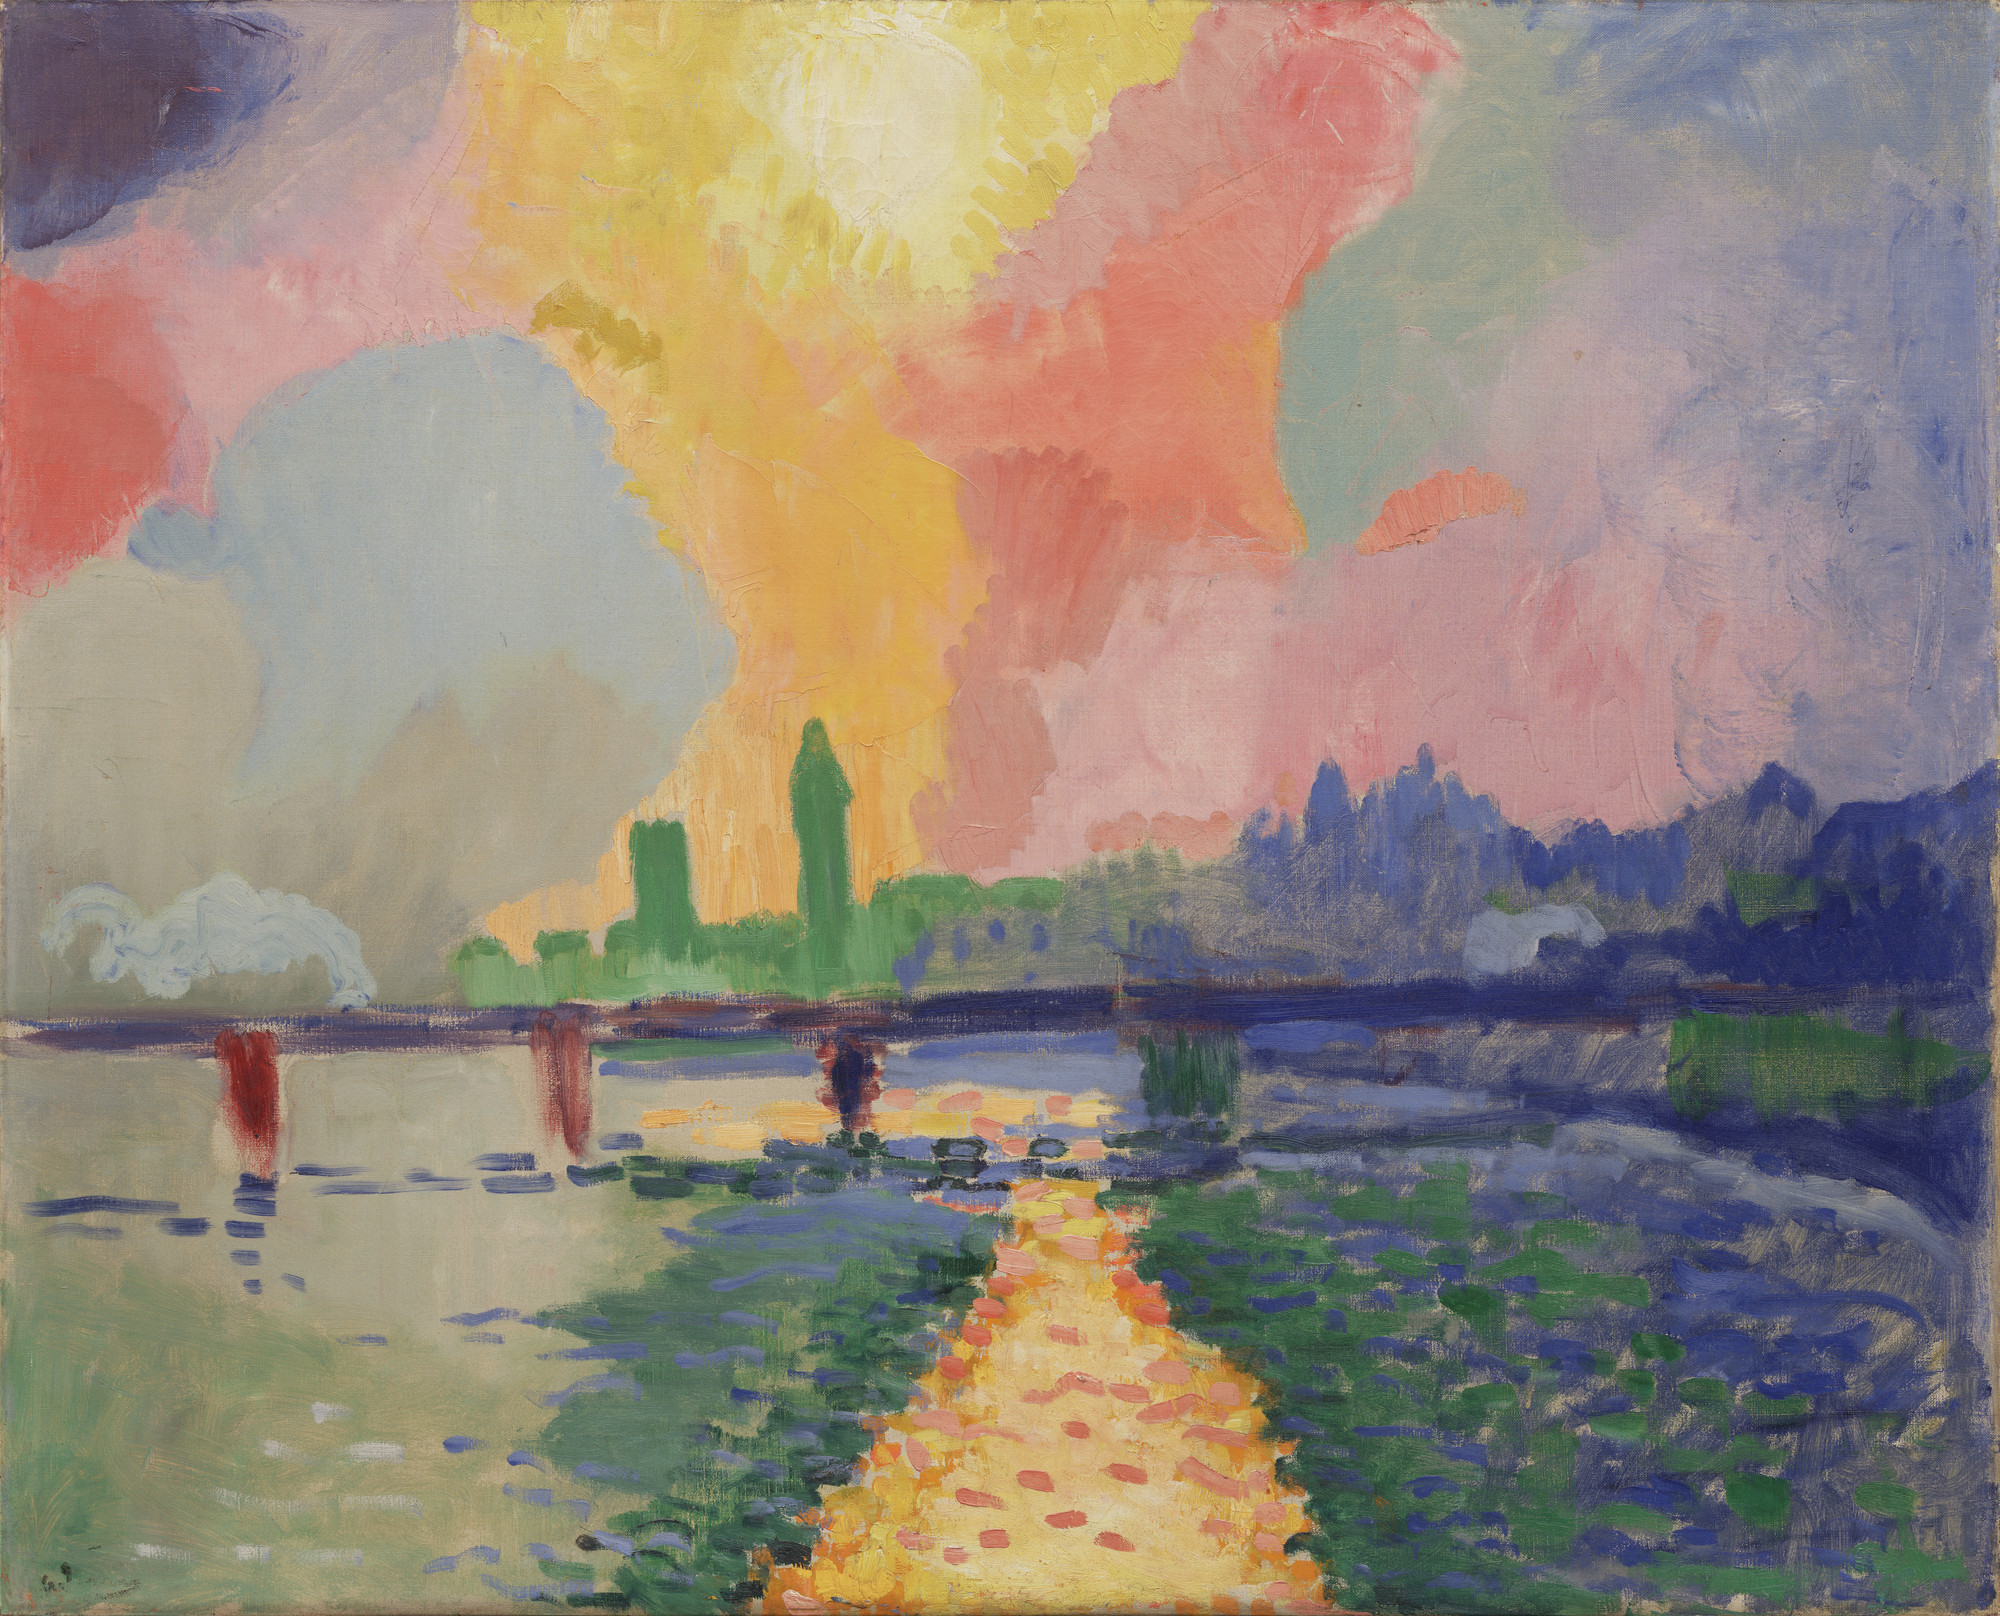 André Derain. Charing Cross Bridge. London, 1905–06. Oil on canvas, 32 1/8 × 39 5/8ʺ (81.7 × 100.7 cm). Fractional gift of Mr. and Mrs. David Rockefeller. © 2016 Artists Rights Society (ARS), New York / ADAGP, Paris. Photo: Paige Knight